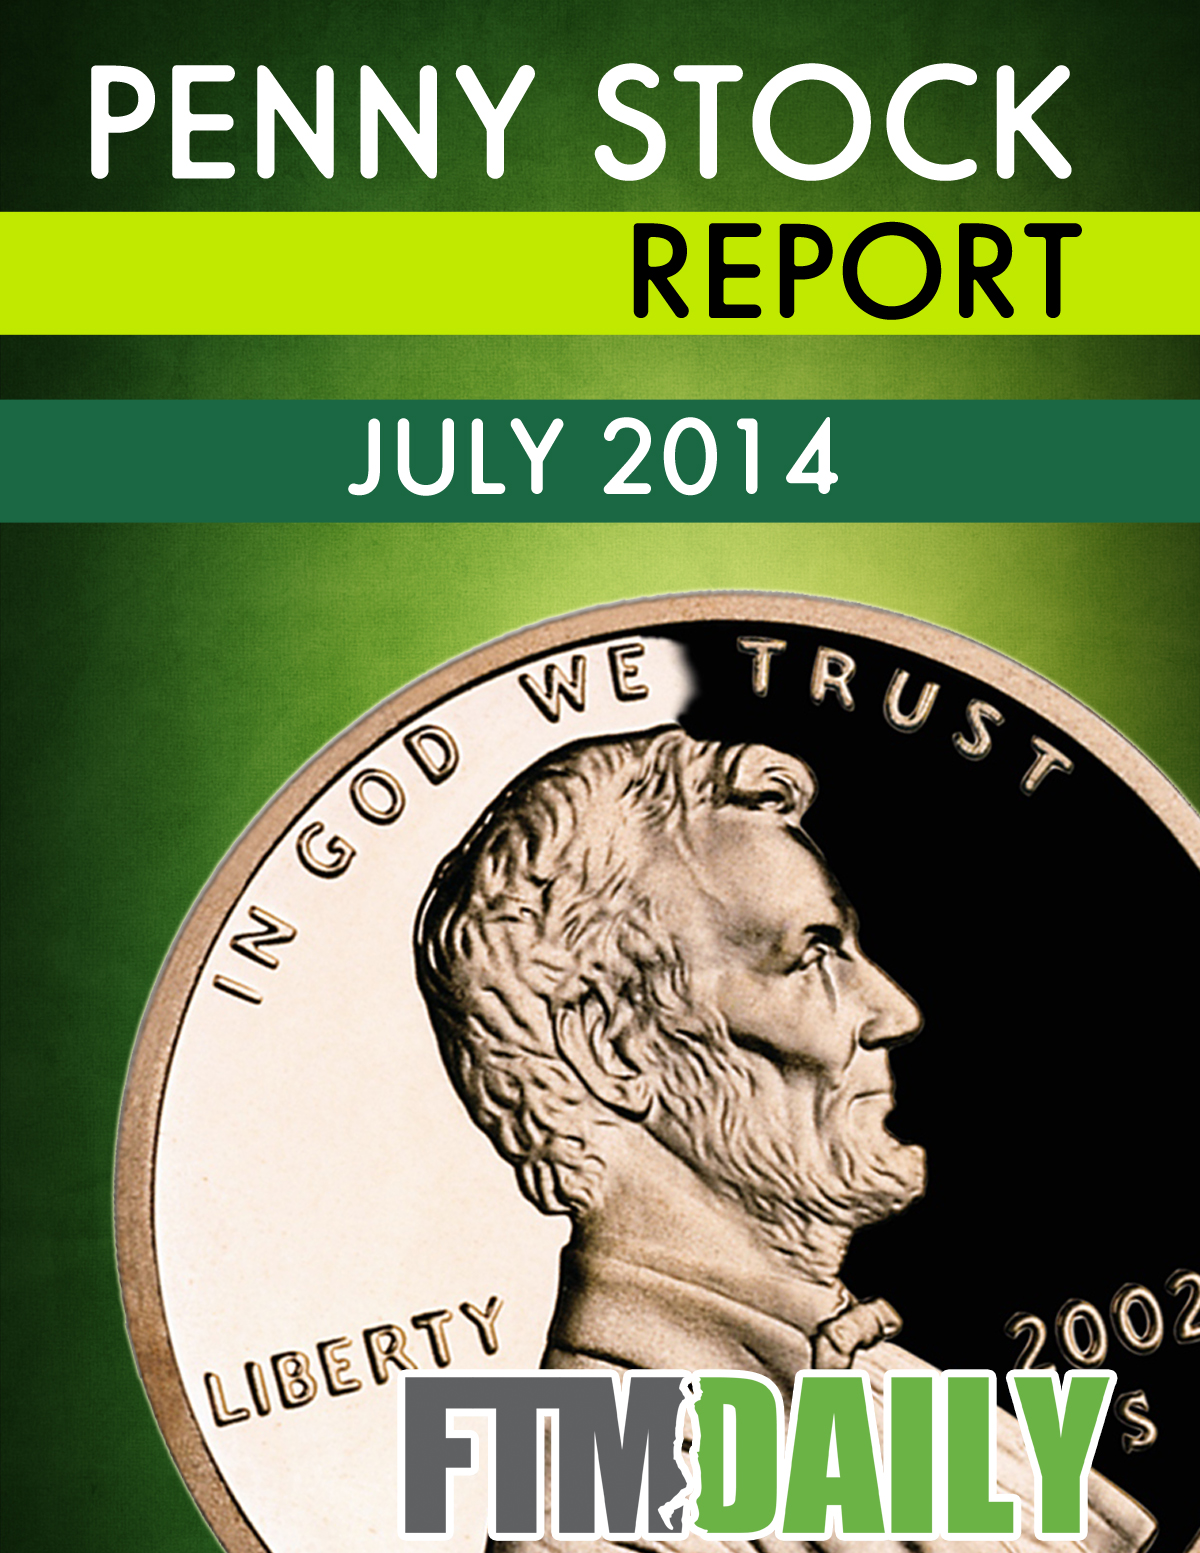 Penny Stock Report - July 2014 Performance